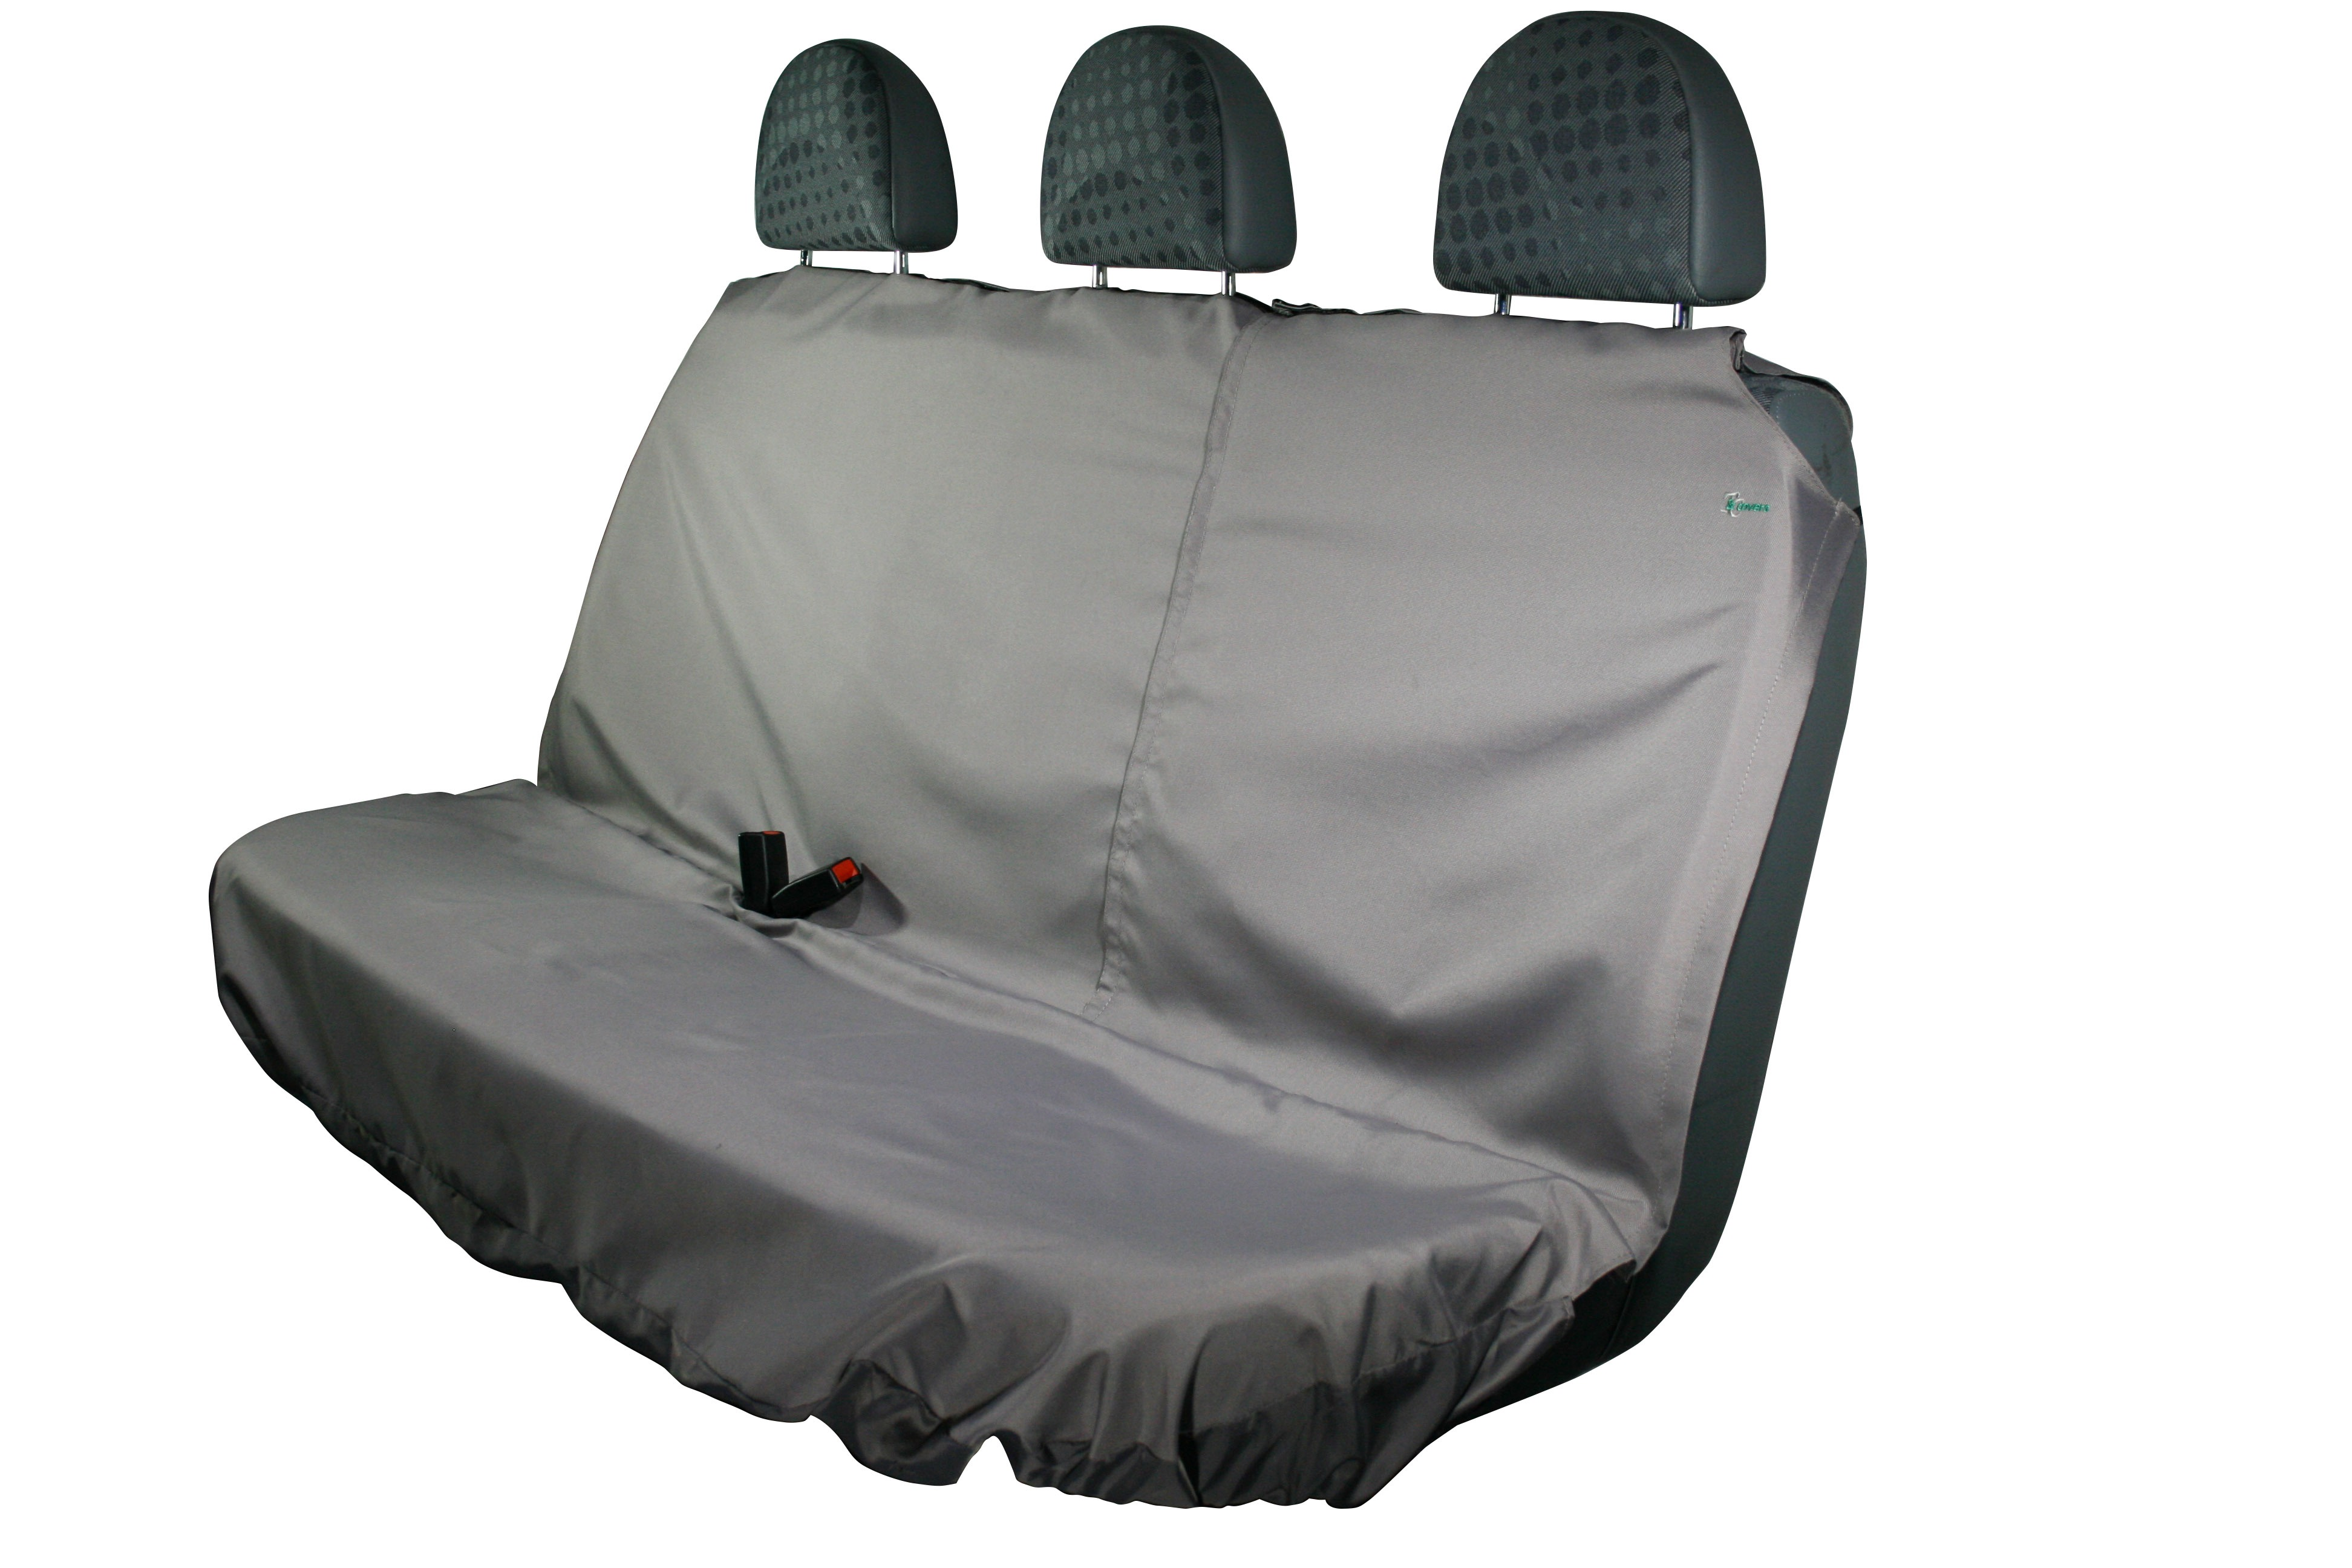 SEAT COVERS INDUS GREY 2014 TO FIT A CITROEN DISPATCH VAN